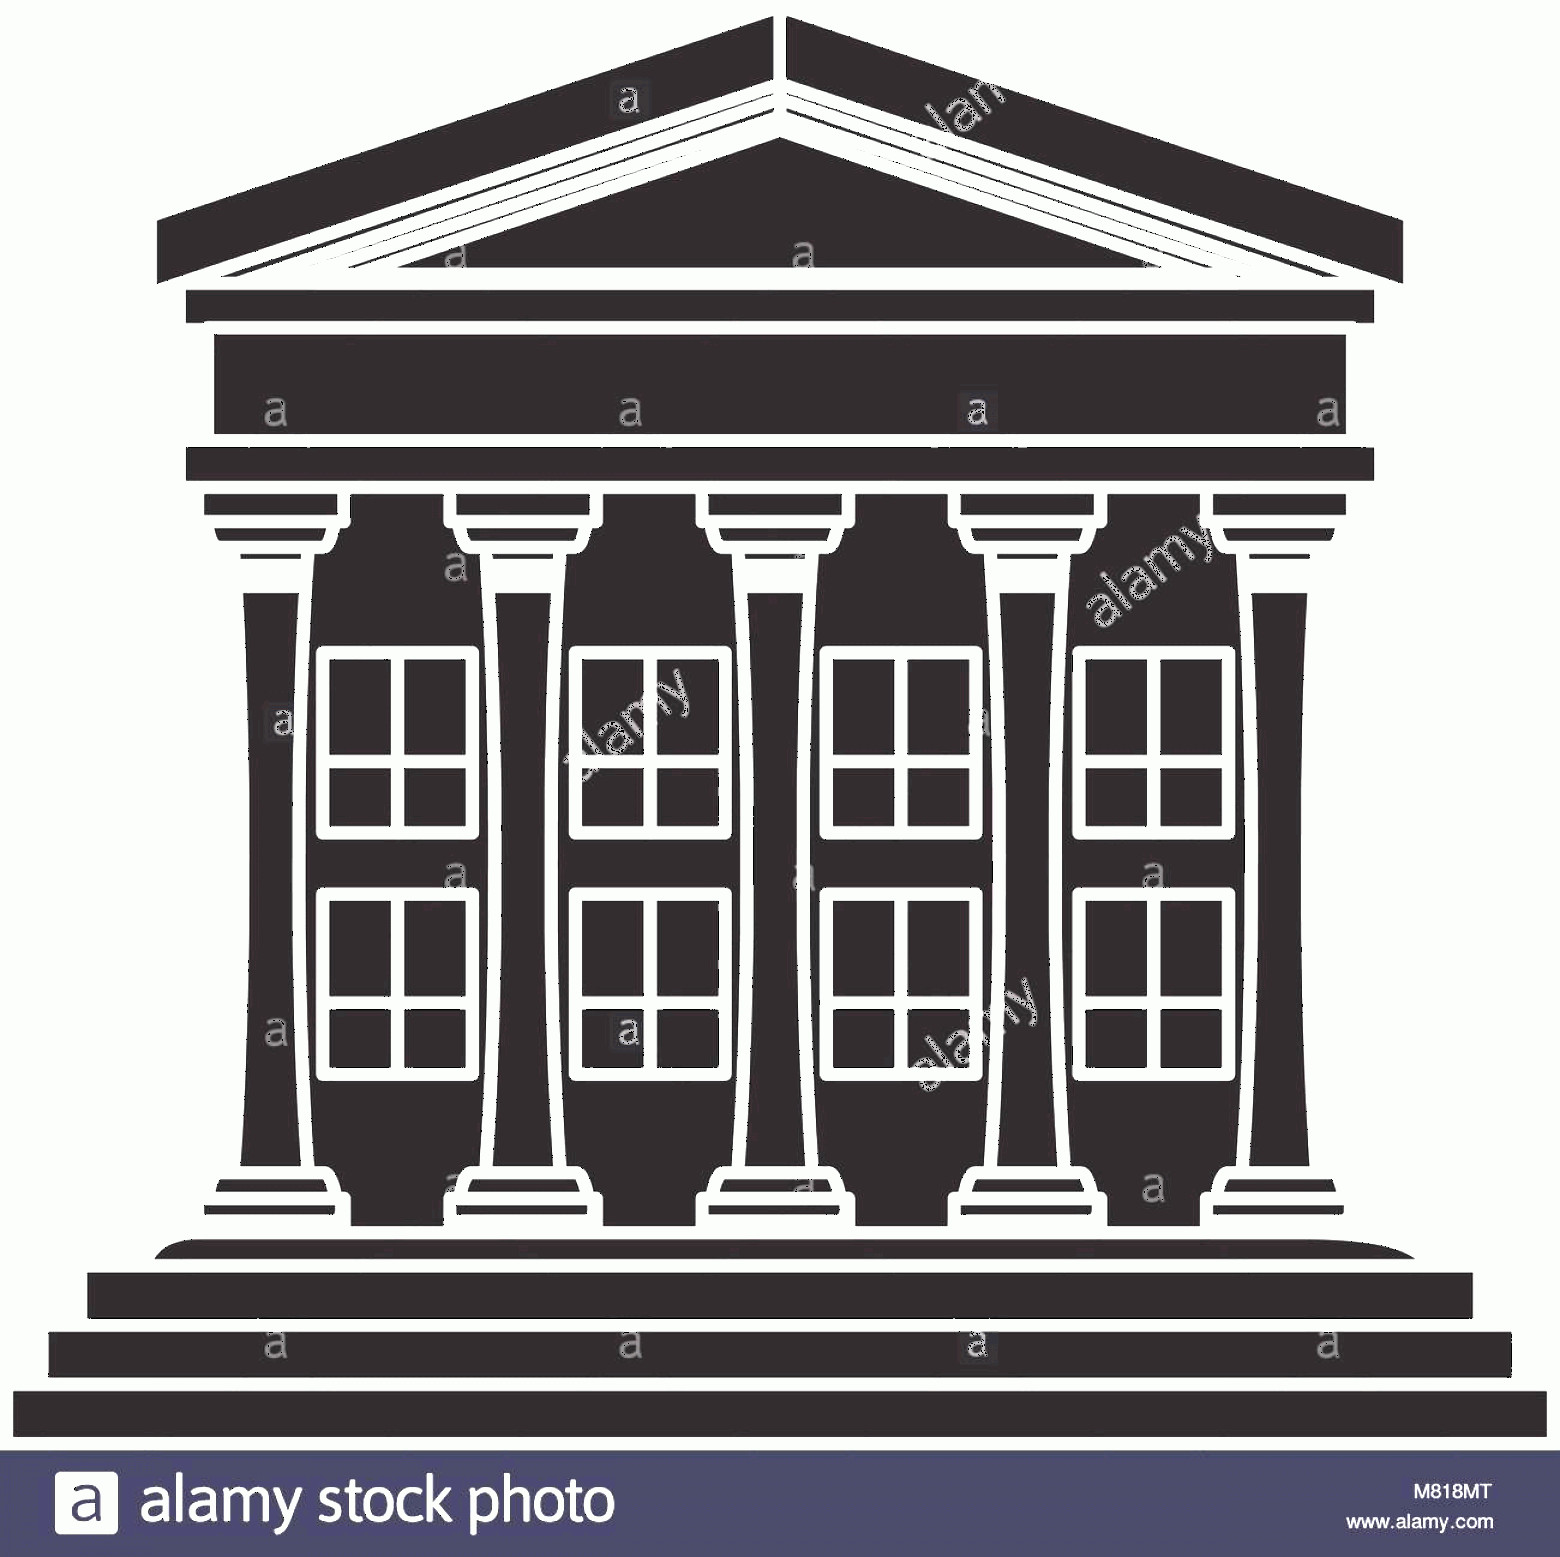 Court Building Vector: Stock Photo Court Building Icon Over White Background Vector Illustration